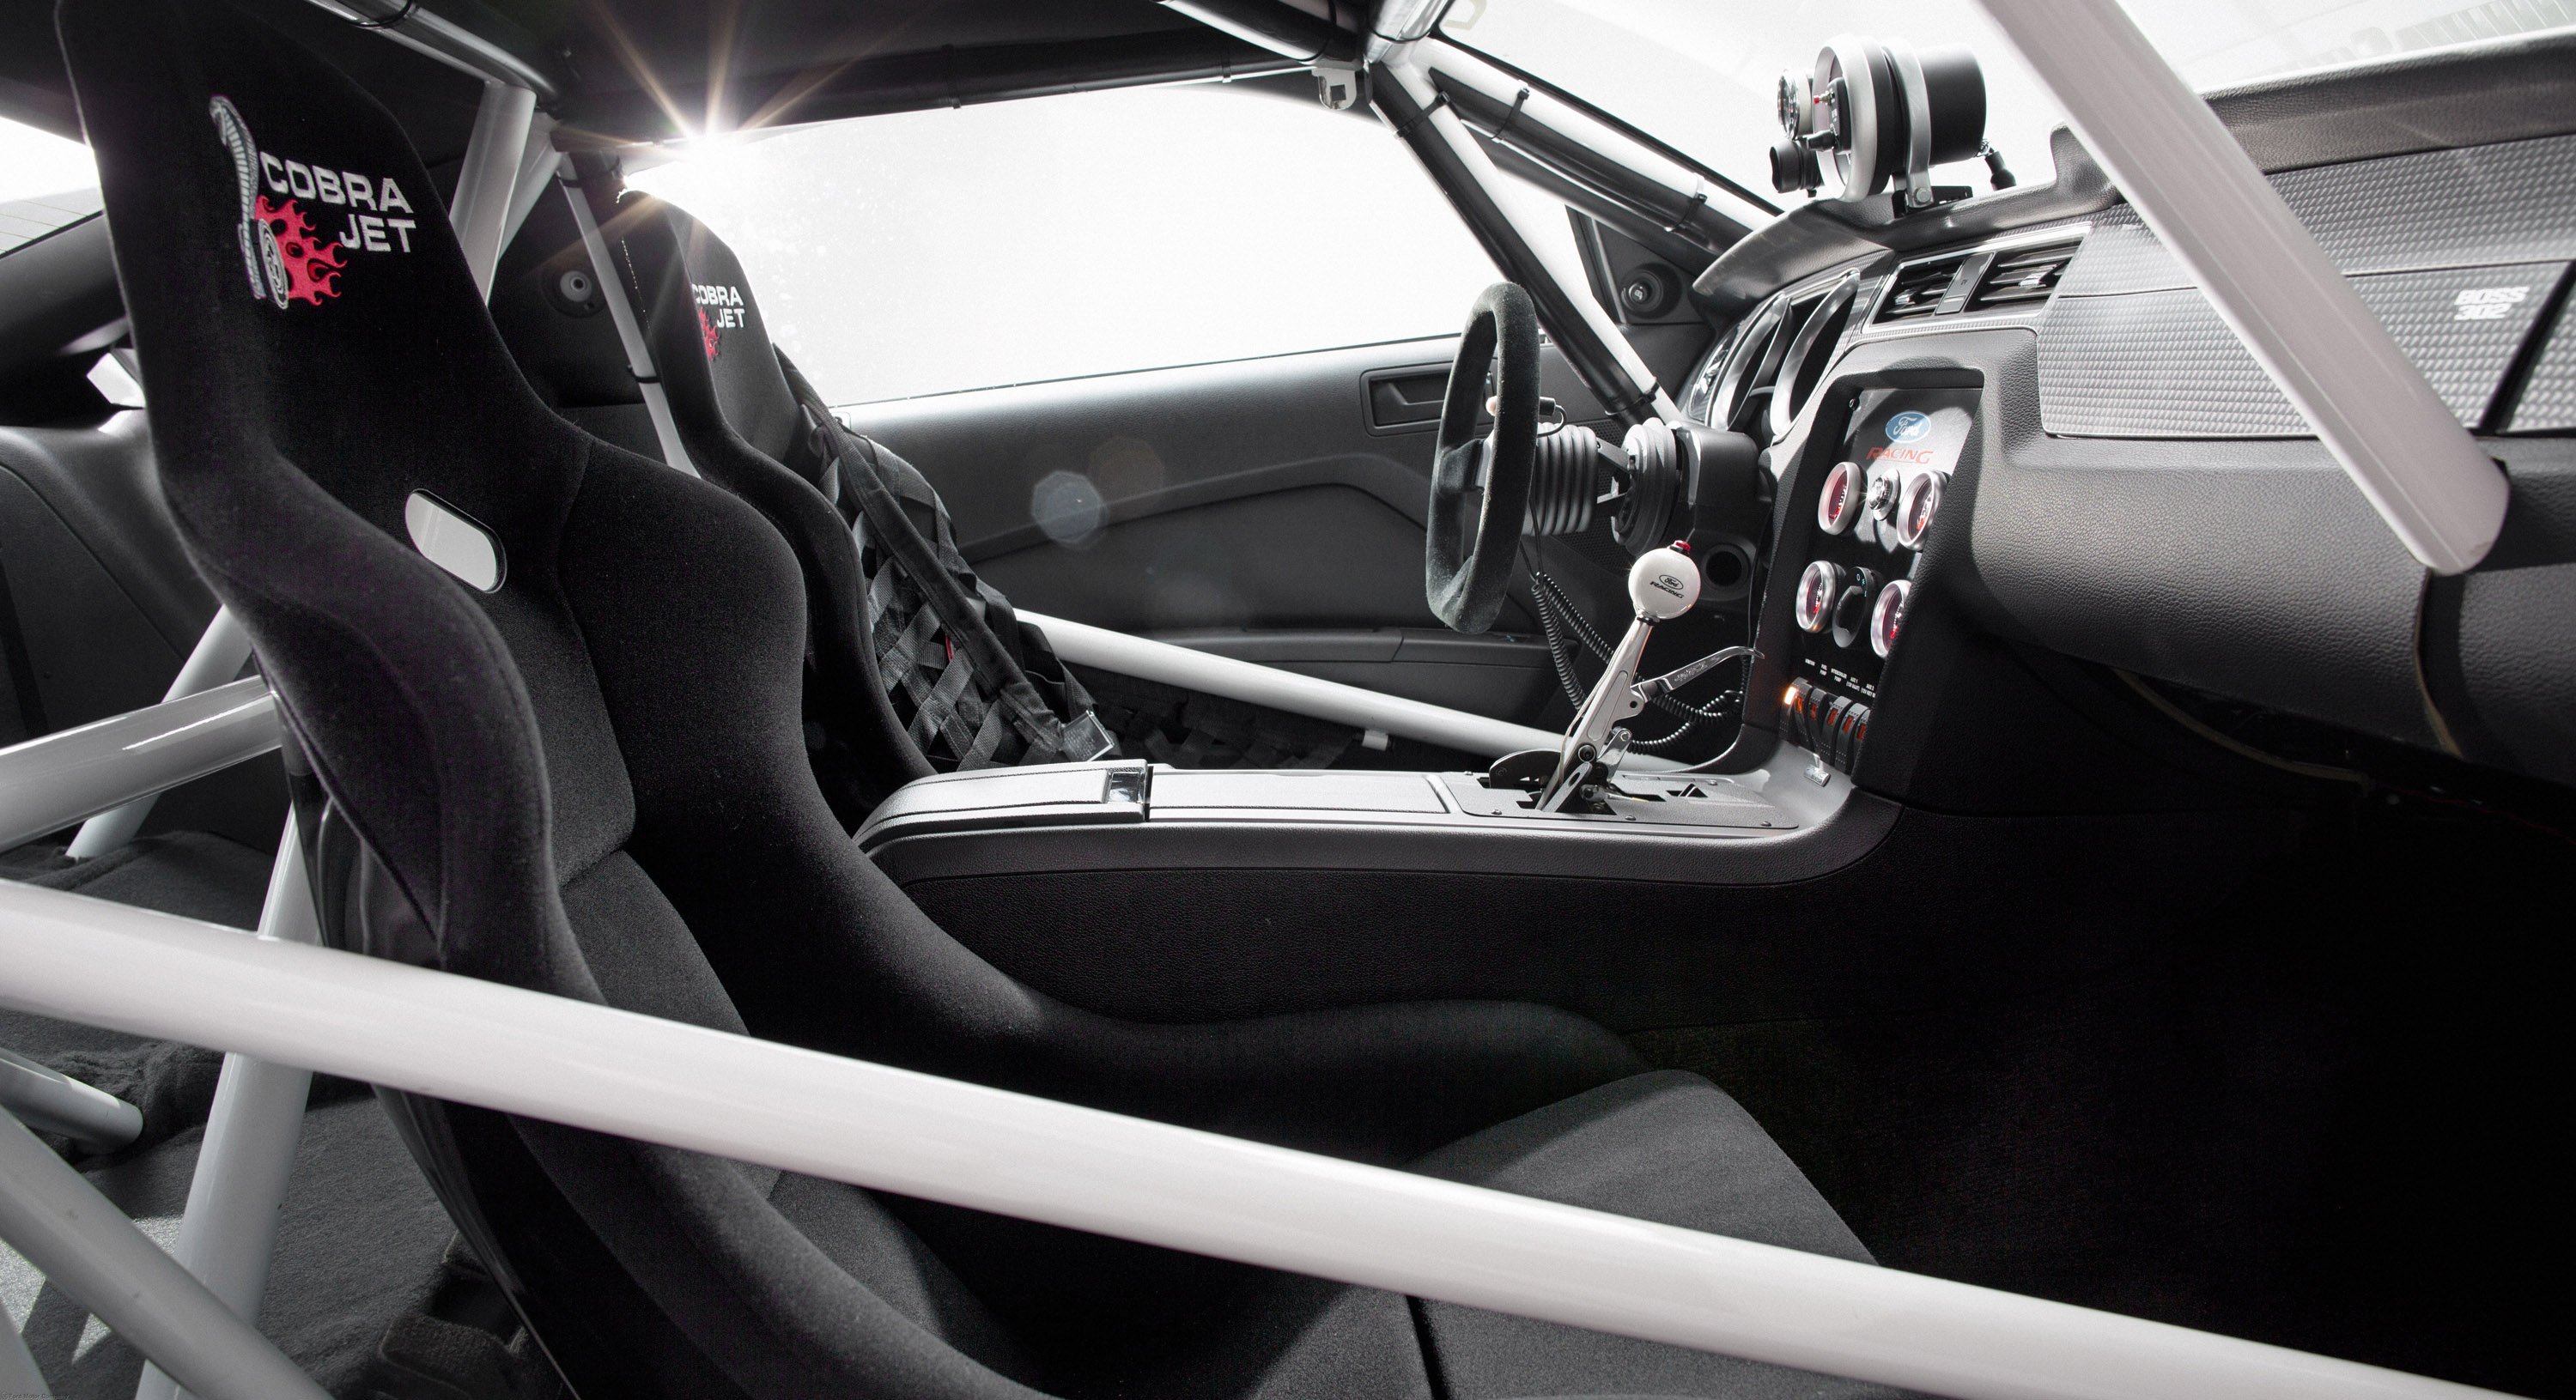 2013 ford mustang cobra jet twin turbo concept race racing hot rod rods muscle interior d. Black Bedroom Furniture Sets. Home Design Ideas